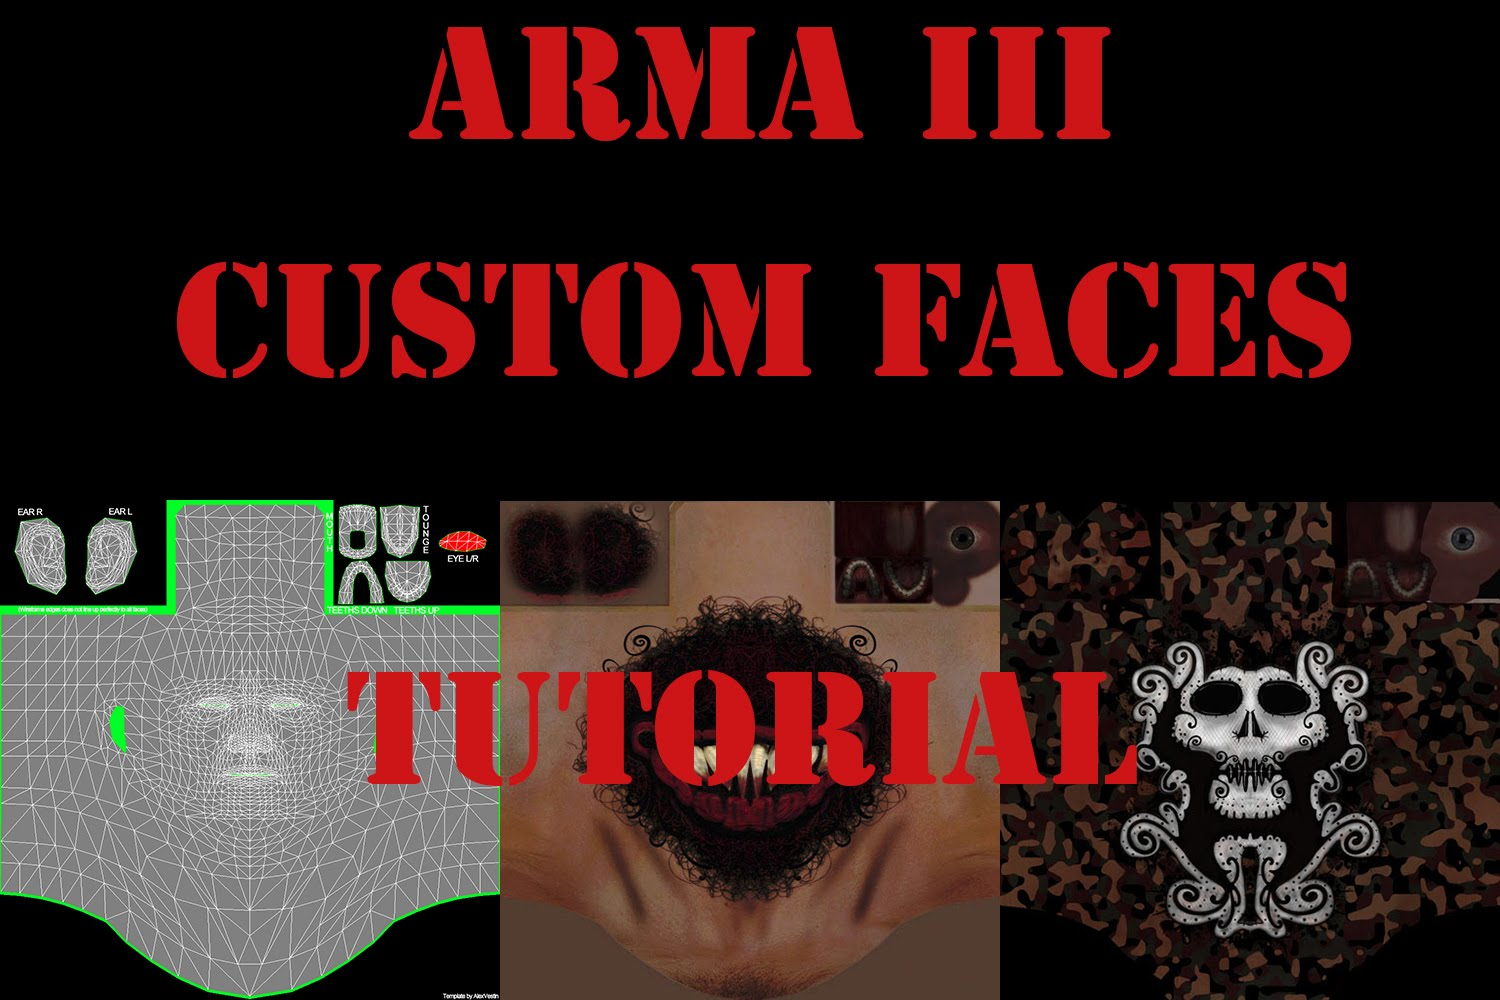 Tutorial] How to use Custom Faces For Arma 3 [German/Deutsch